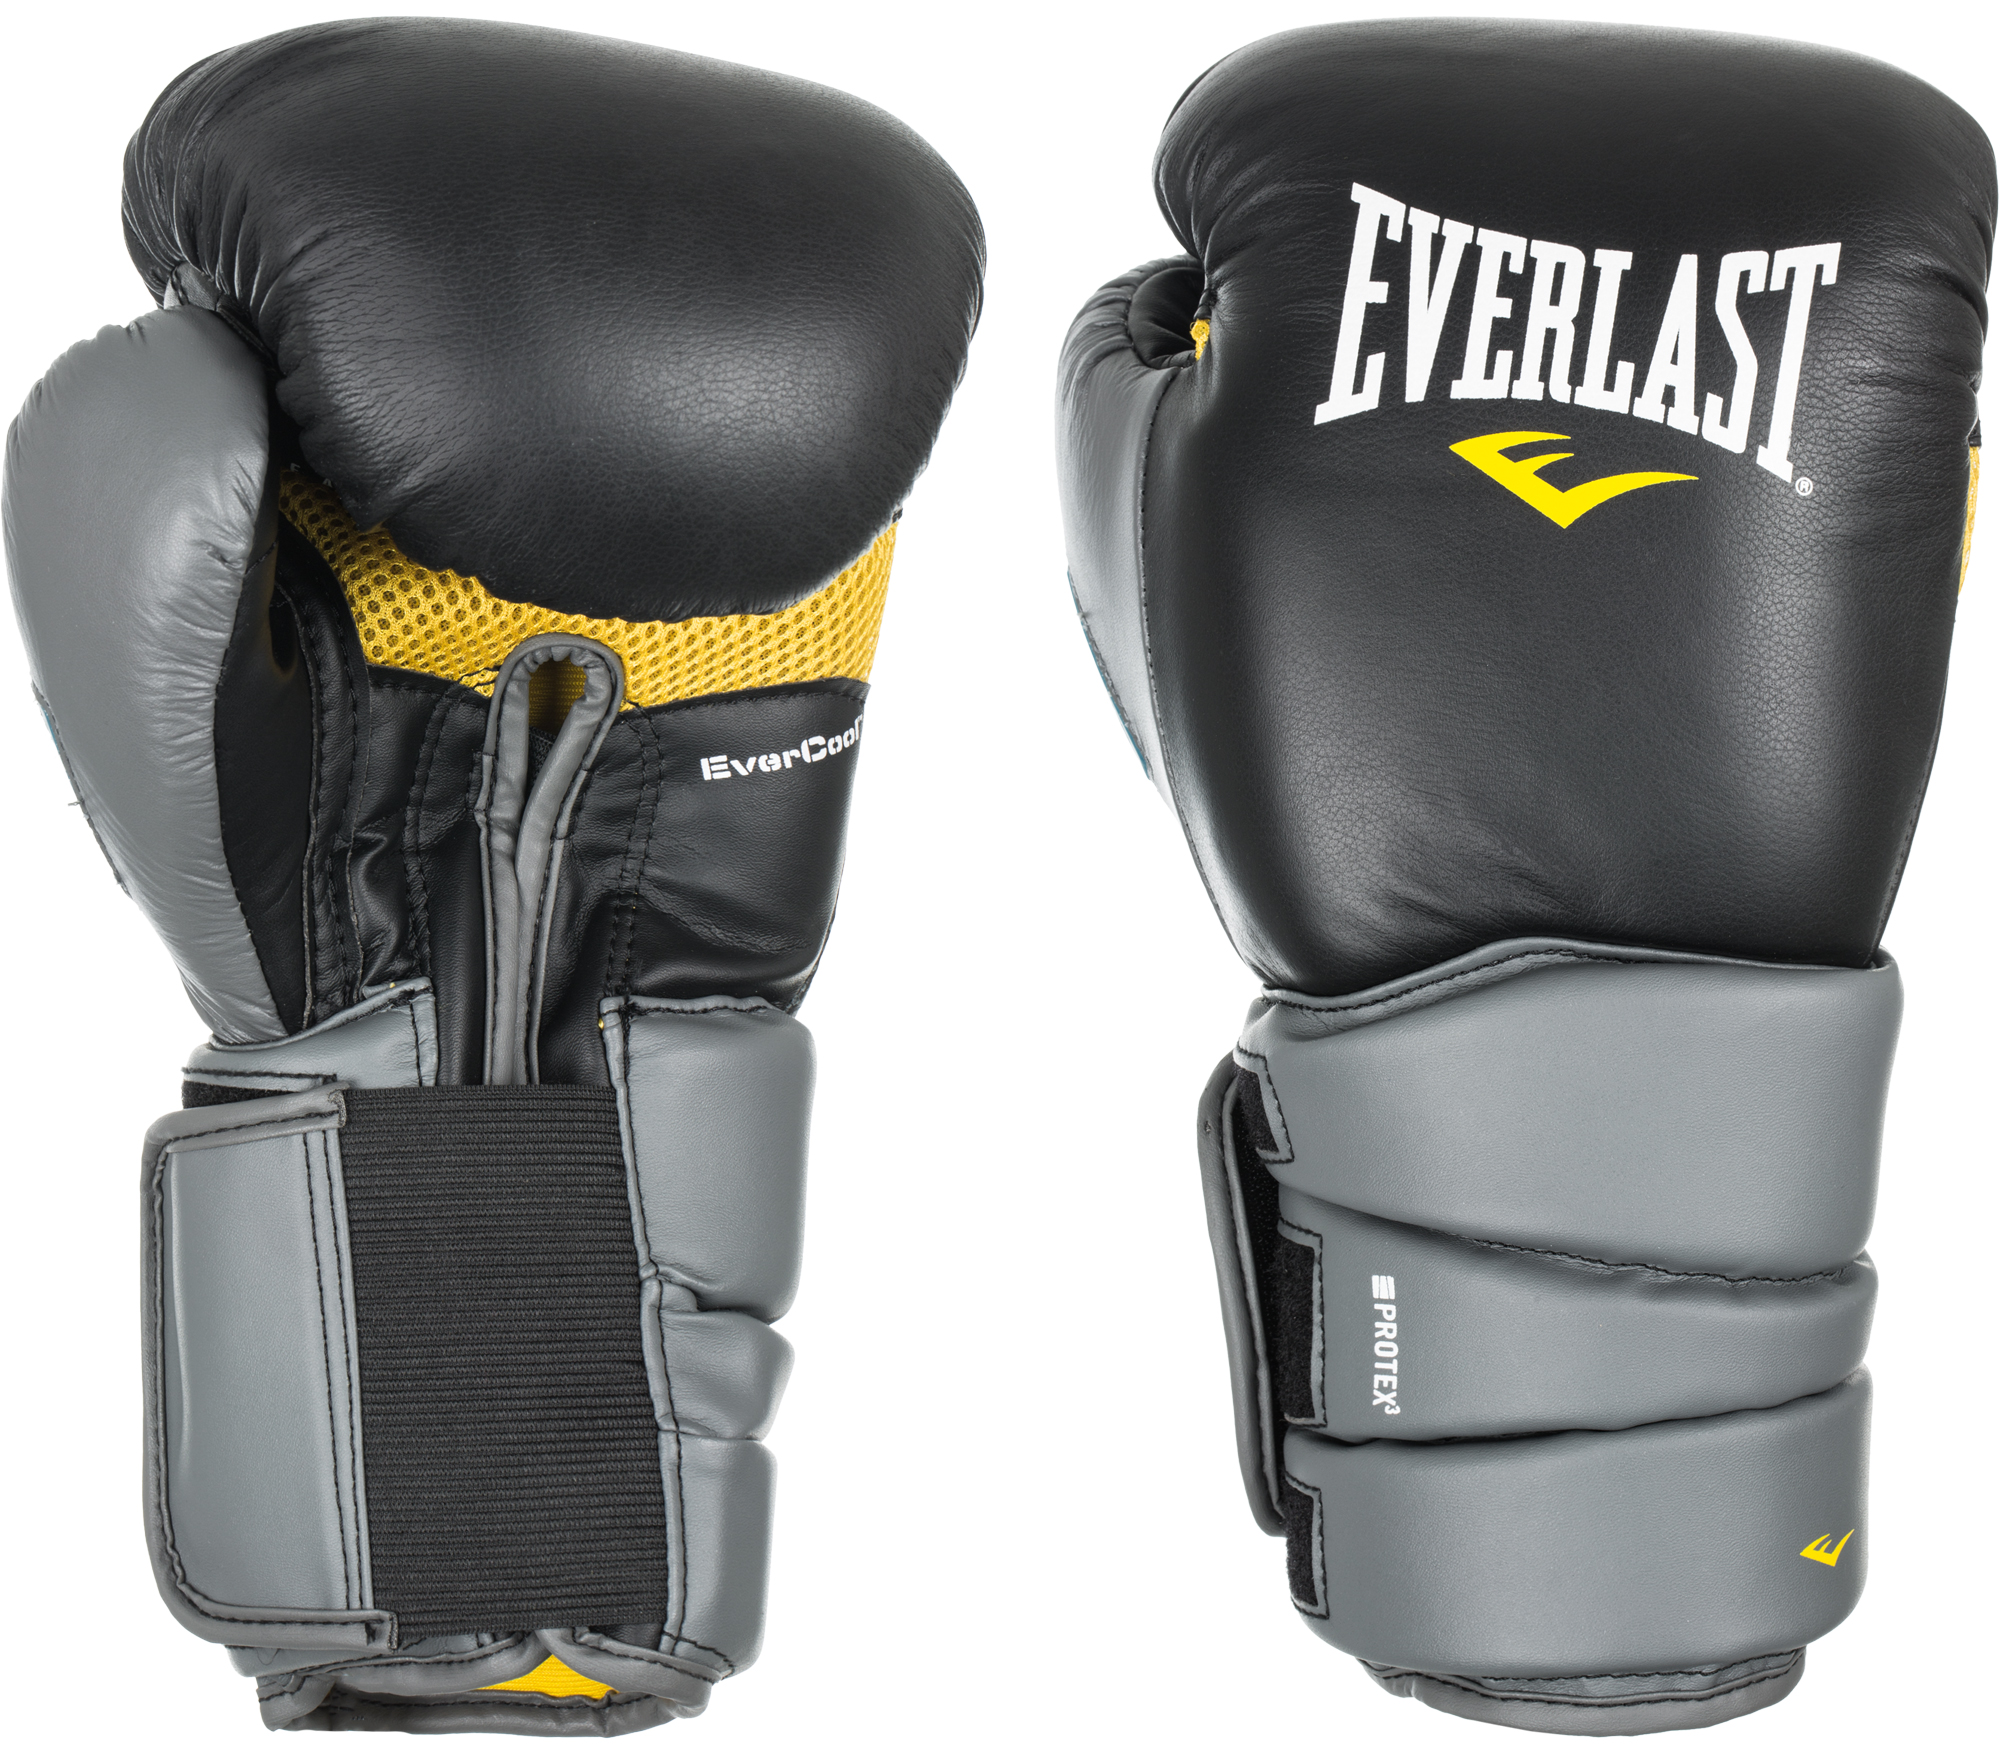 Everlast Перчатки боксерские Everlast Protex3, размер 16 oz/X-L acnefree severe maximum strength repair lotion 10% benzoyl peroxide 2 x 2 oz 4 oz